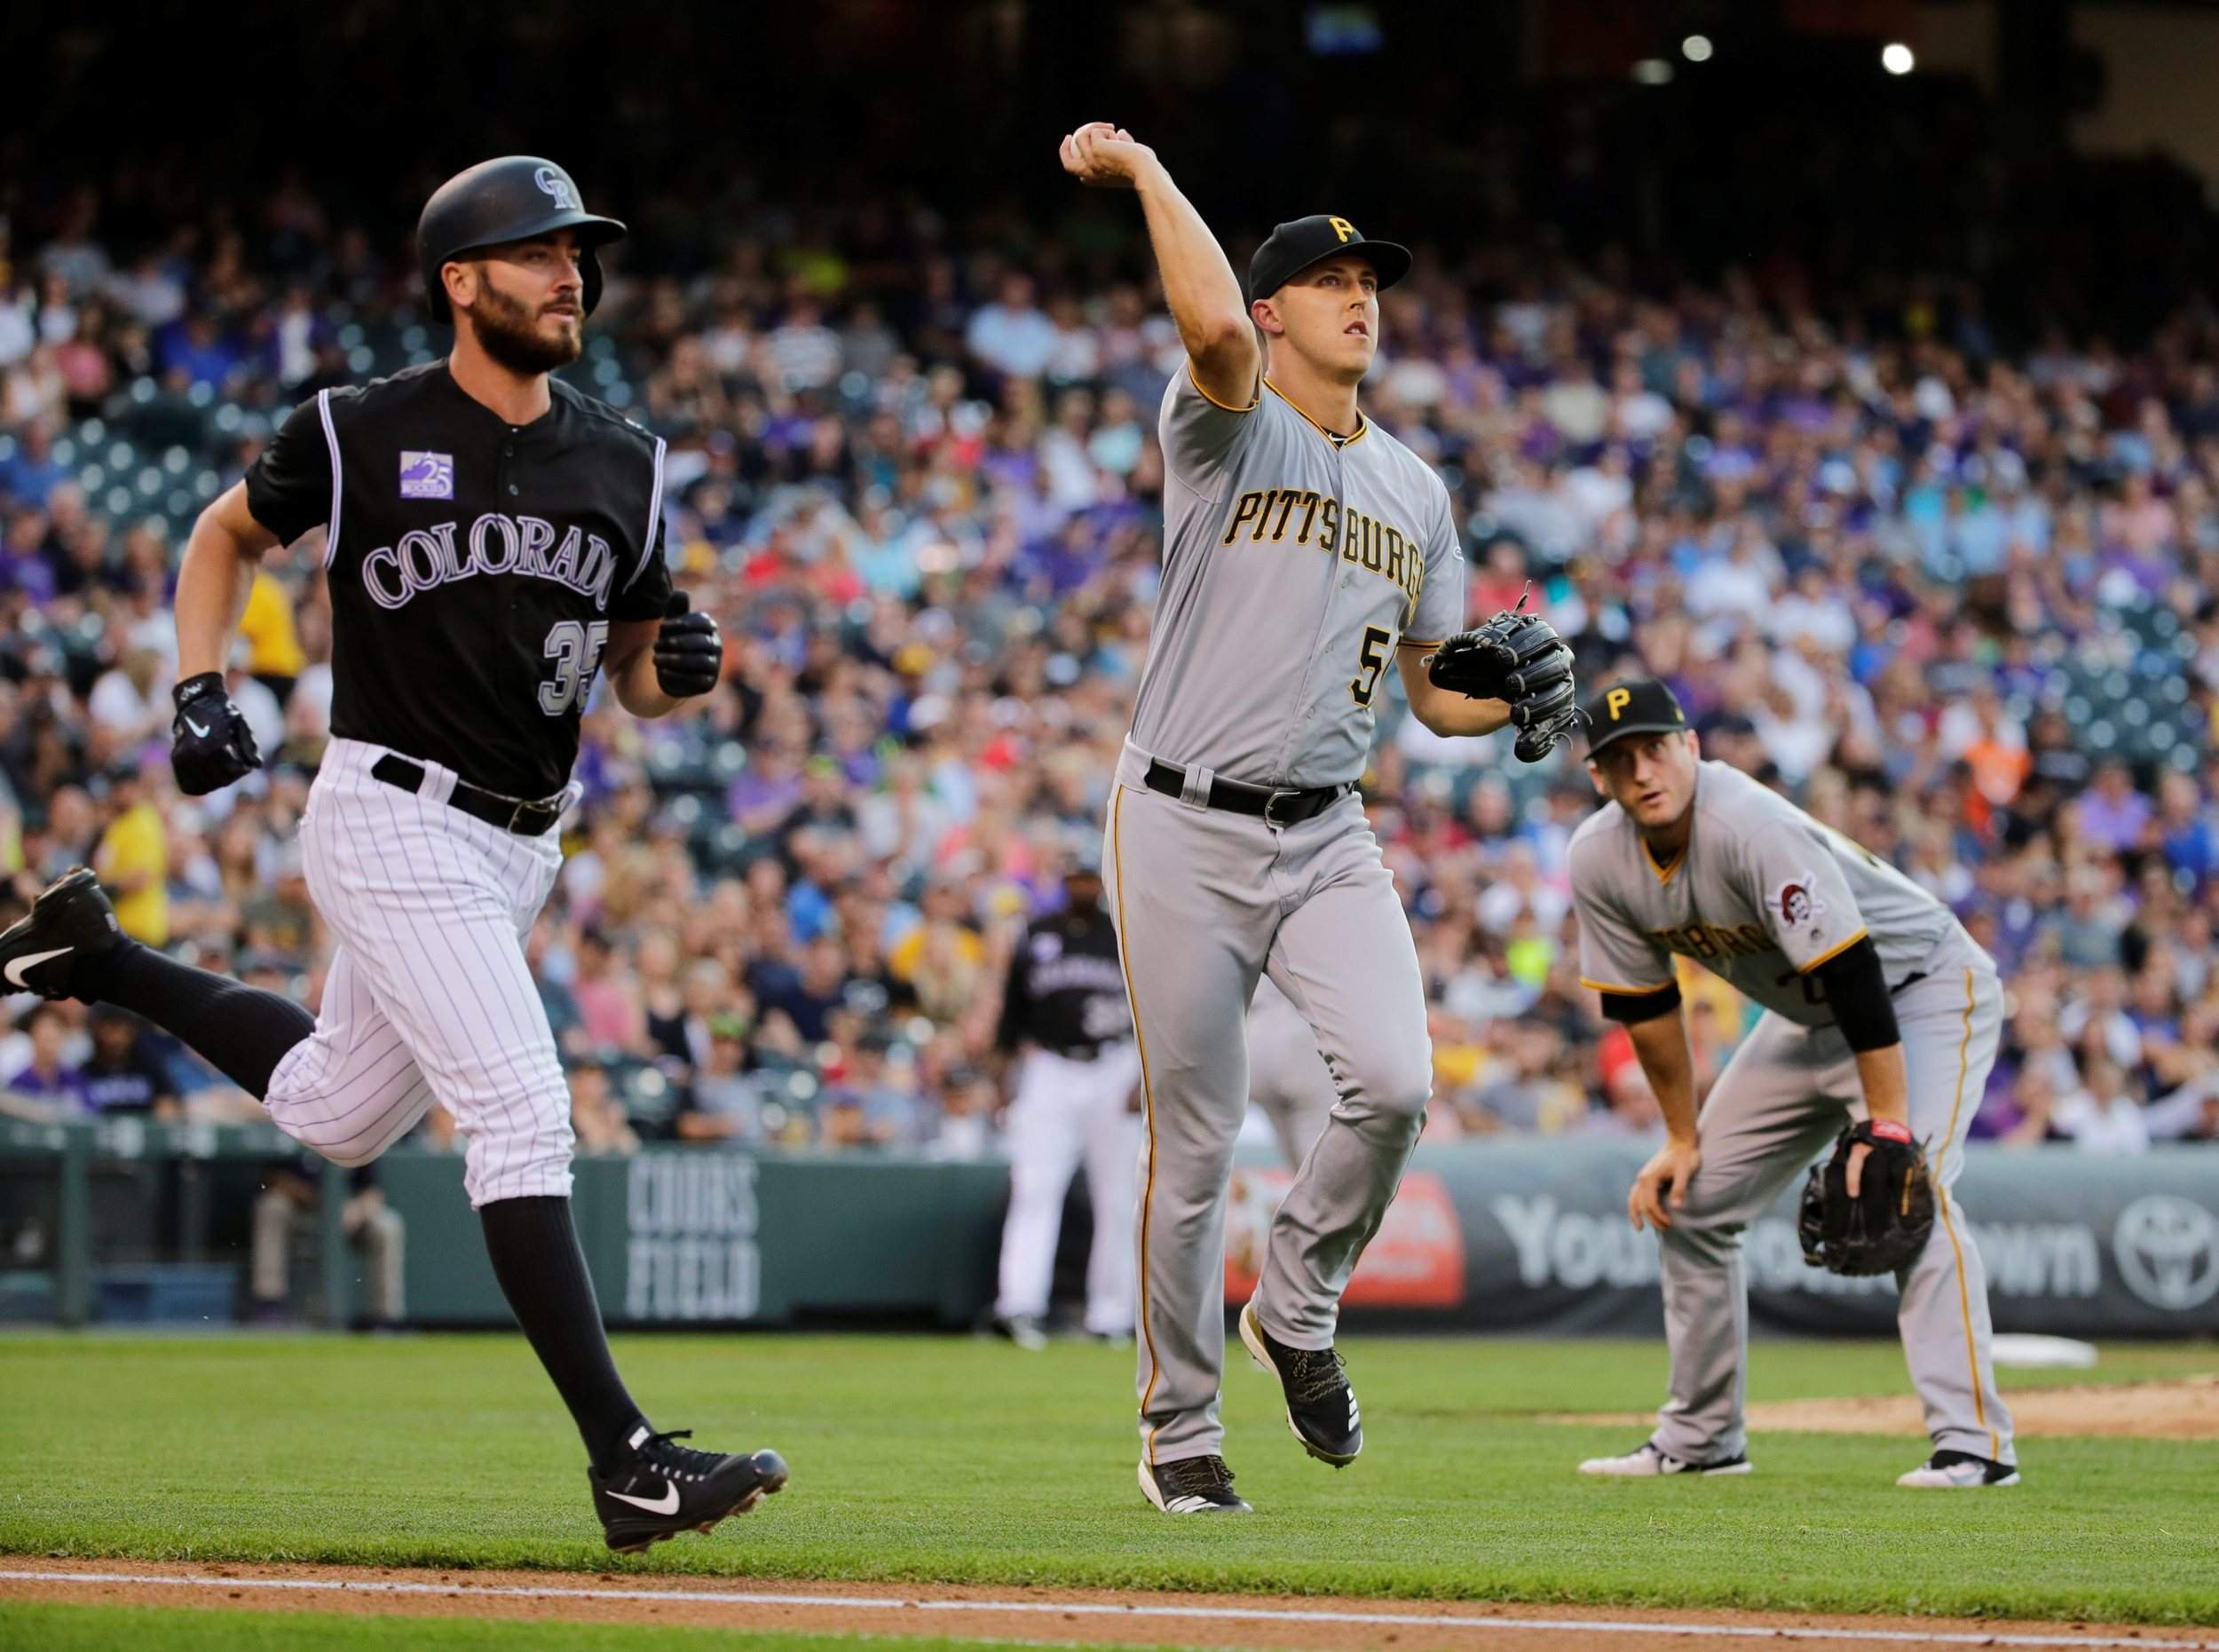 3444512d51cb0 Pittsburgh Pirates starting pitcher Jameson Taillon throws out Colorado  Rockies  Chad Bettis